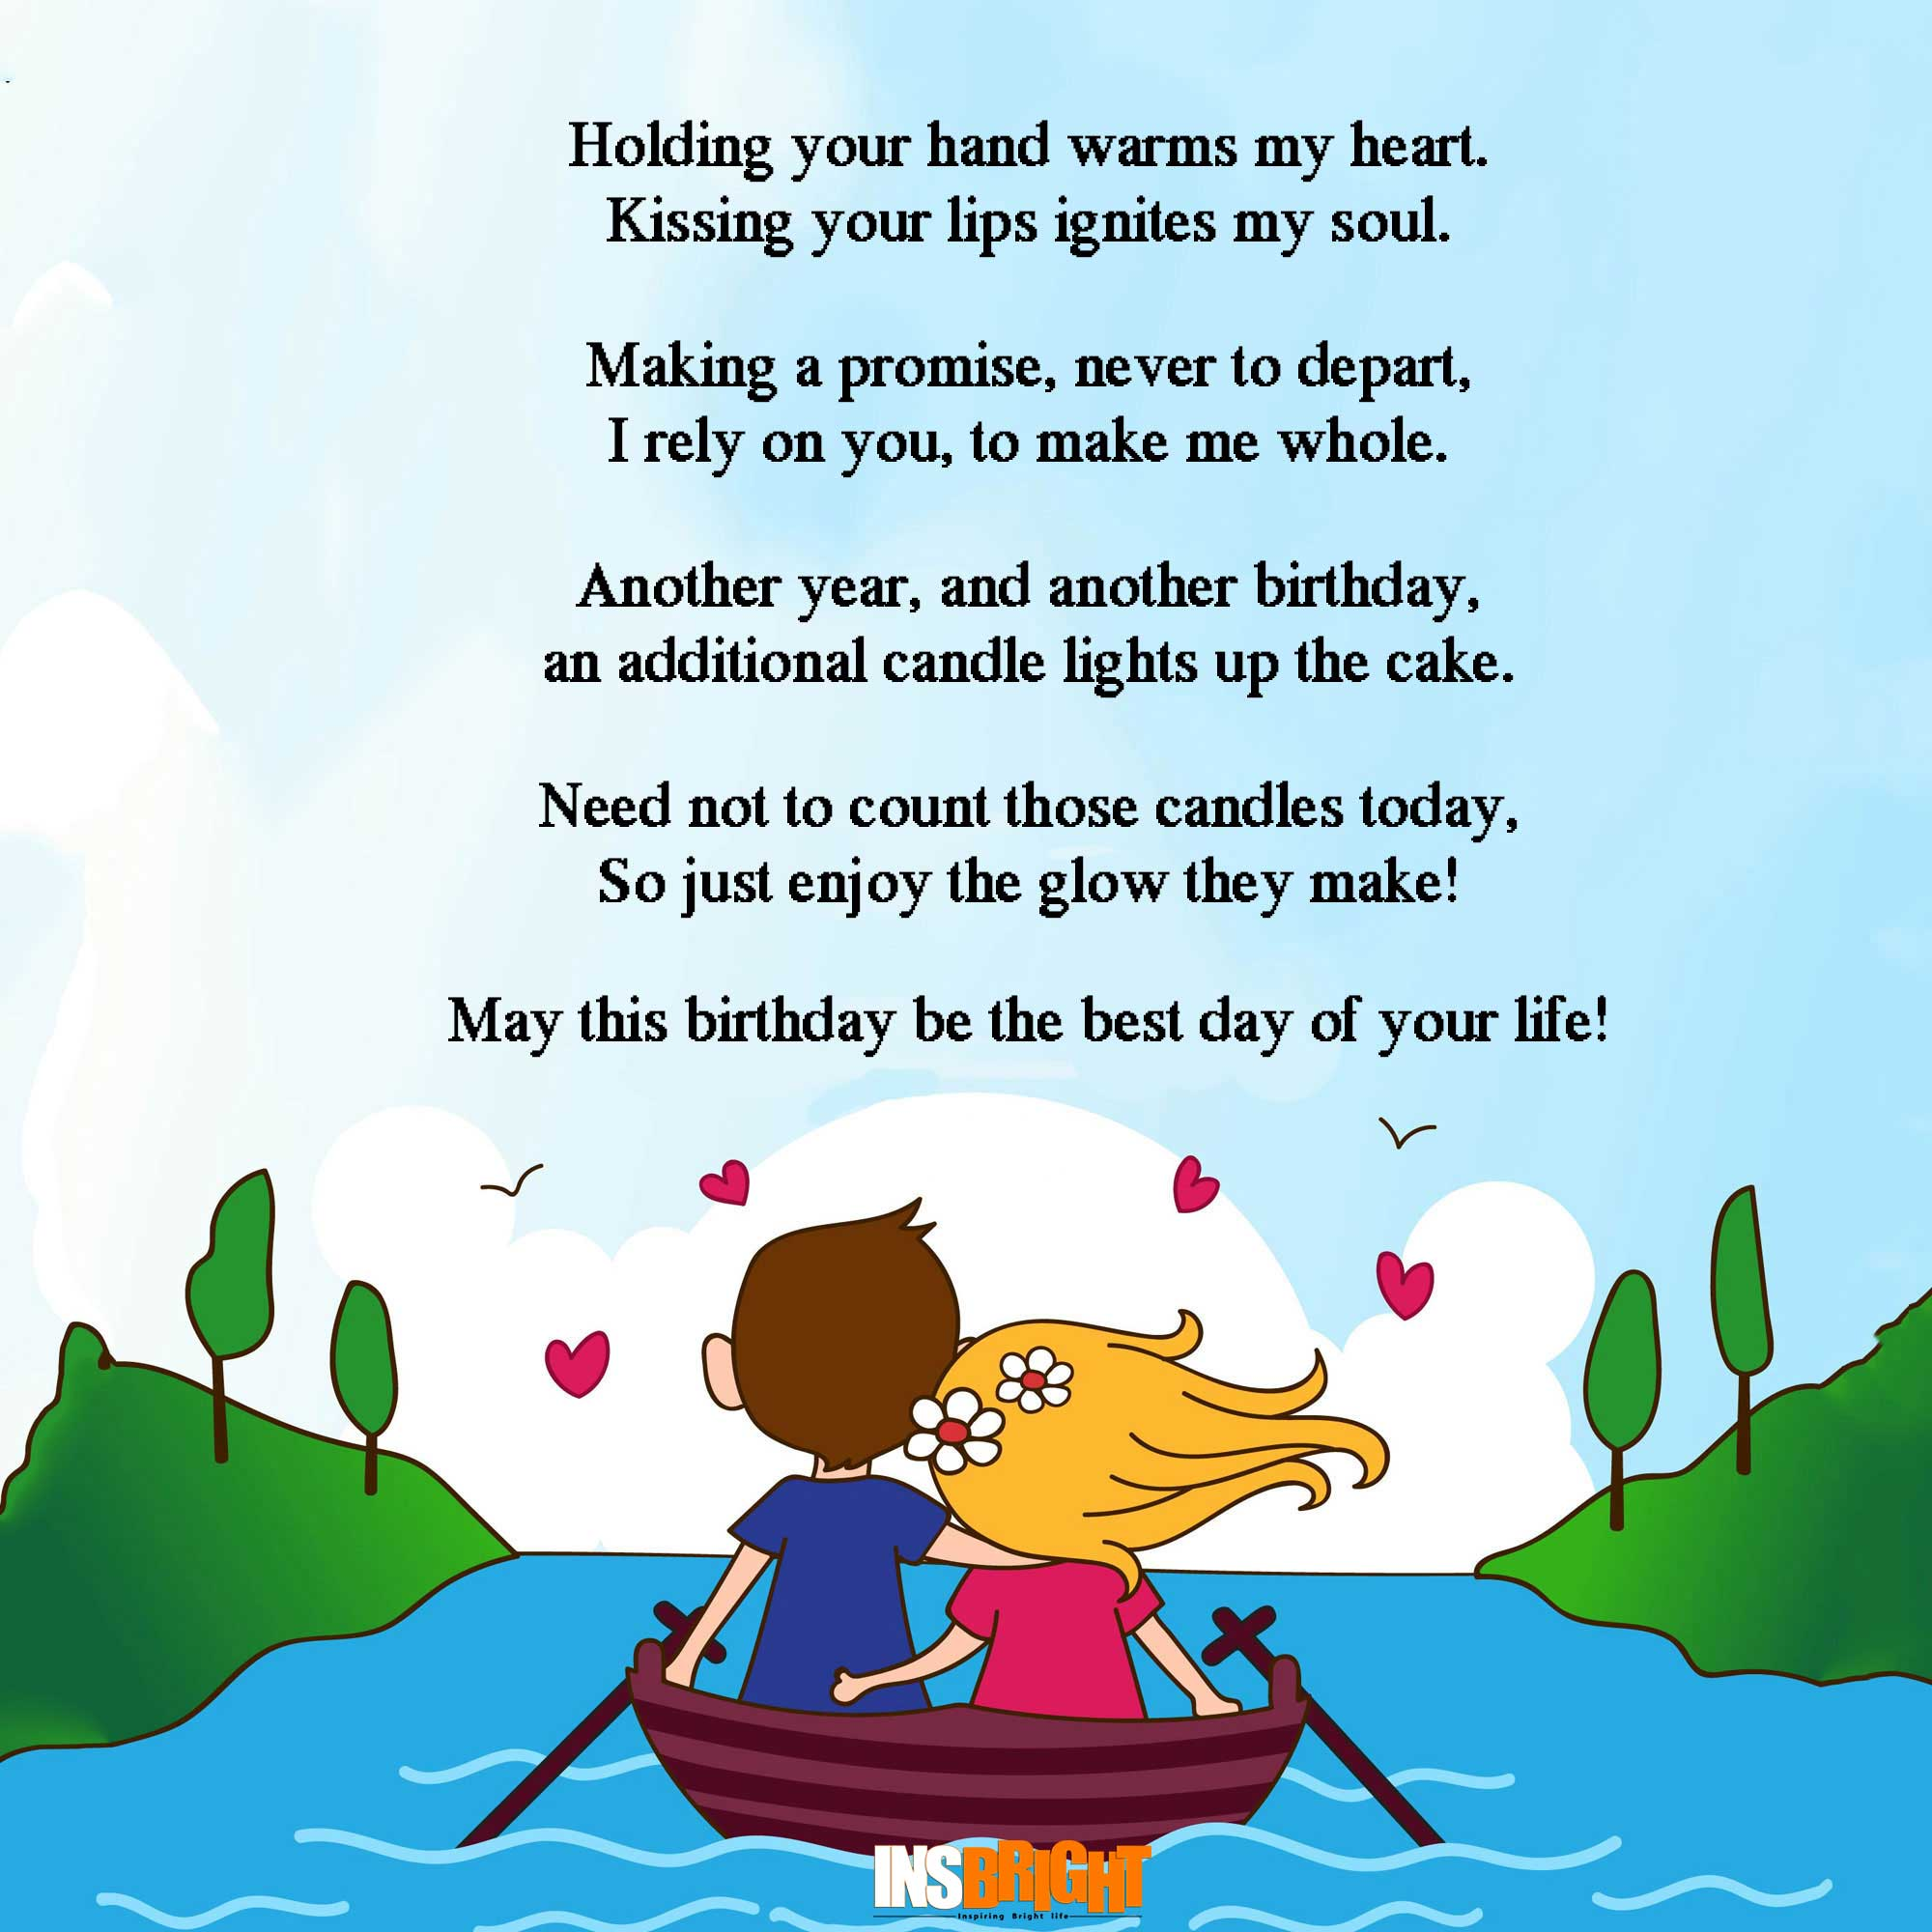 10 Romantic Happy Birthday Poems For Wife With Love From Husband